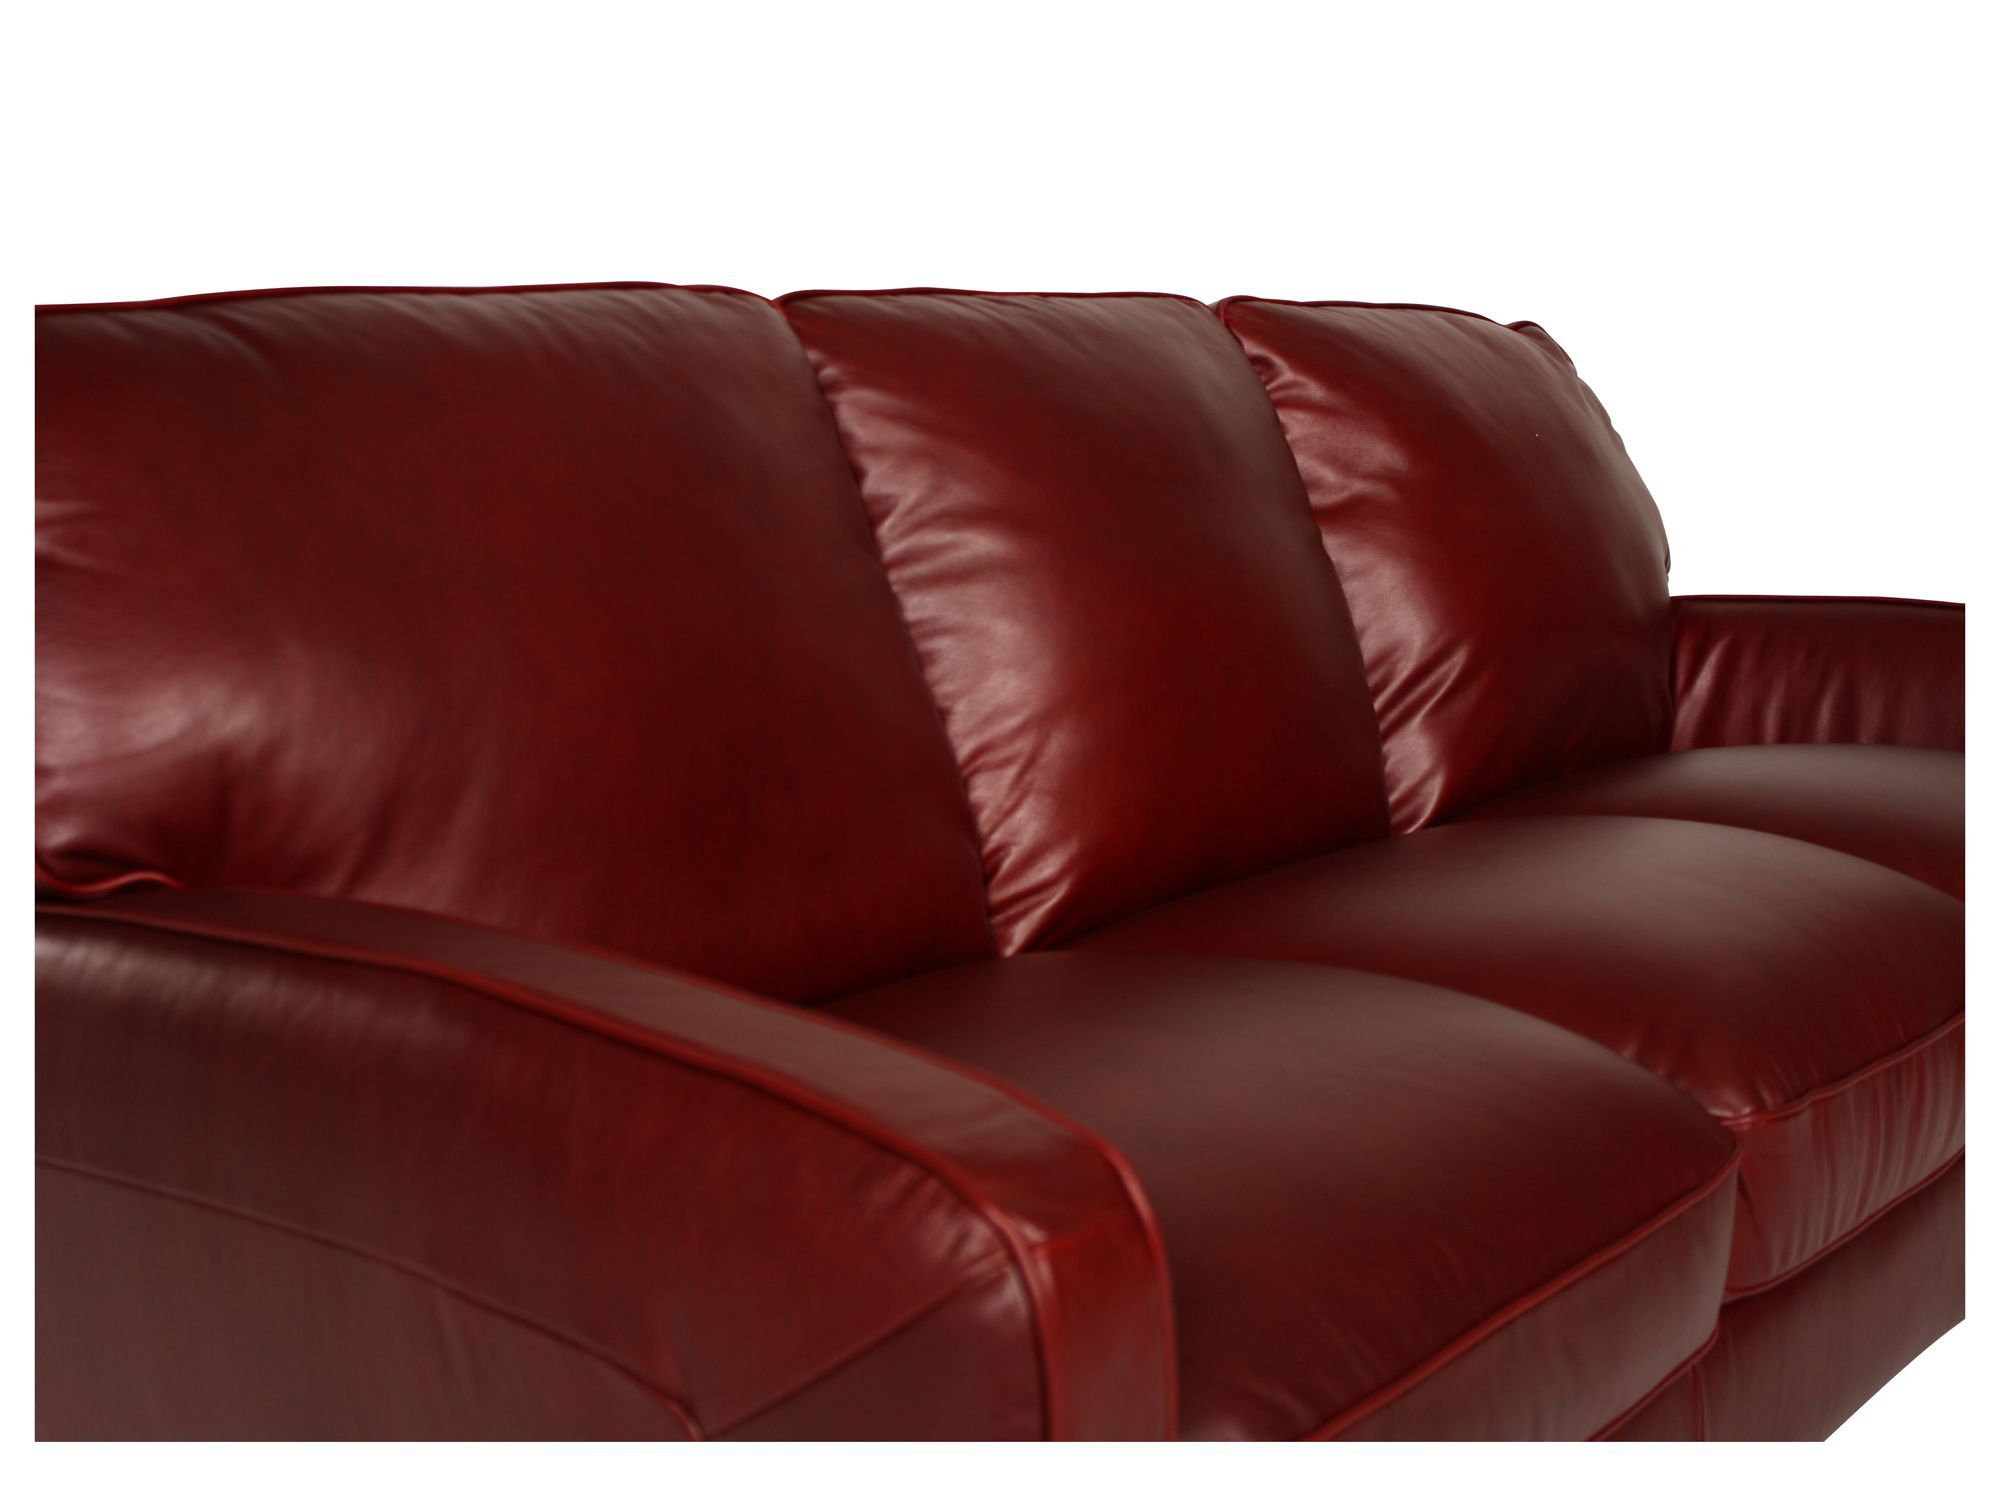 Natuzzi: deep red leather sofa, shades of grey room? Accent chairs in lighter grey w/turquoise ...